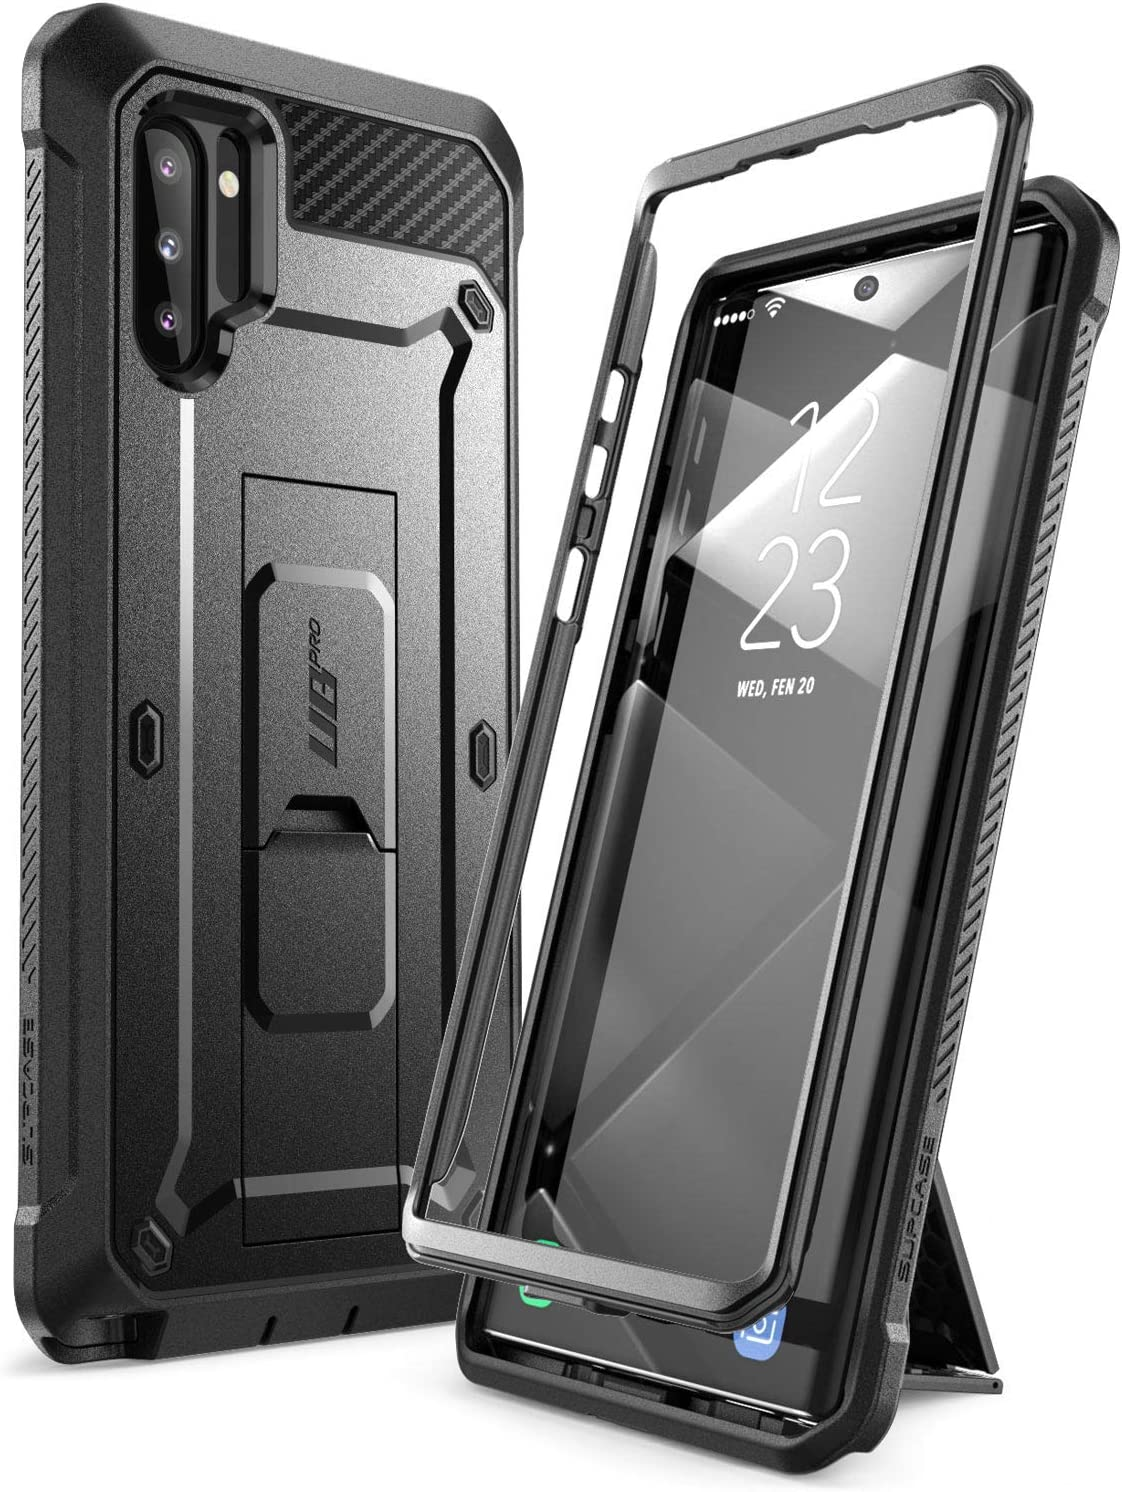 SUPCASE Unicorn Beetle Pro Series Case for Samsung Galaxy Note 10 (2019 Release), Full-Body Rugged Holster & Kickstand without Built-In Screen Protector (Black)